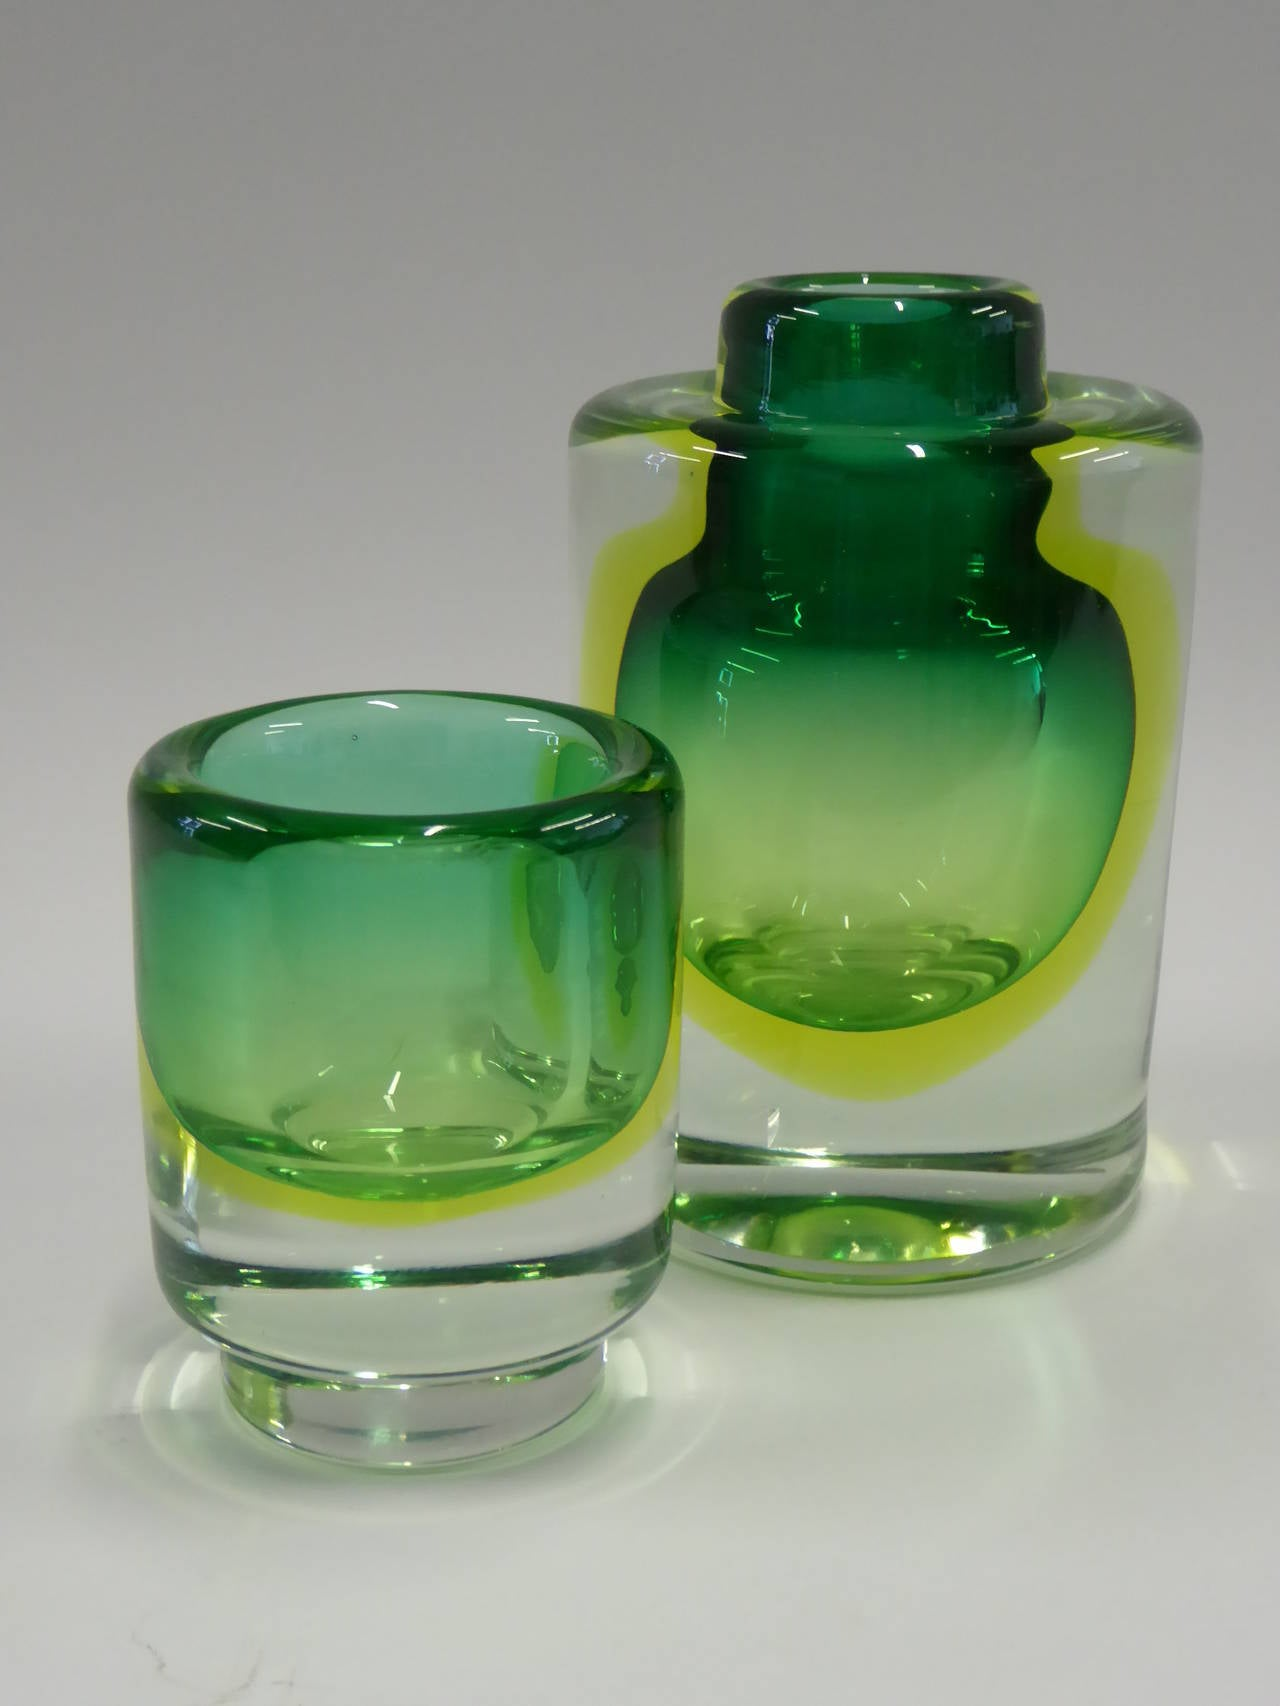 dating uranium glass Blacklight testing: is it reliable  and vaseline glass contains uranium  not be the sole determining factor in dating colorless glass in an eapg or.